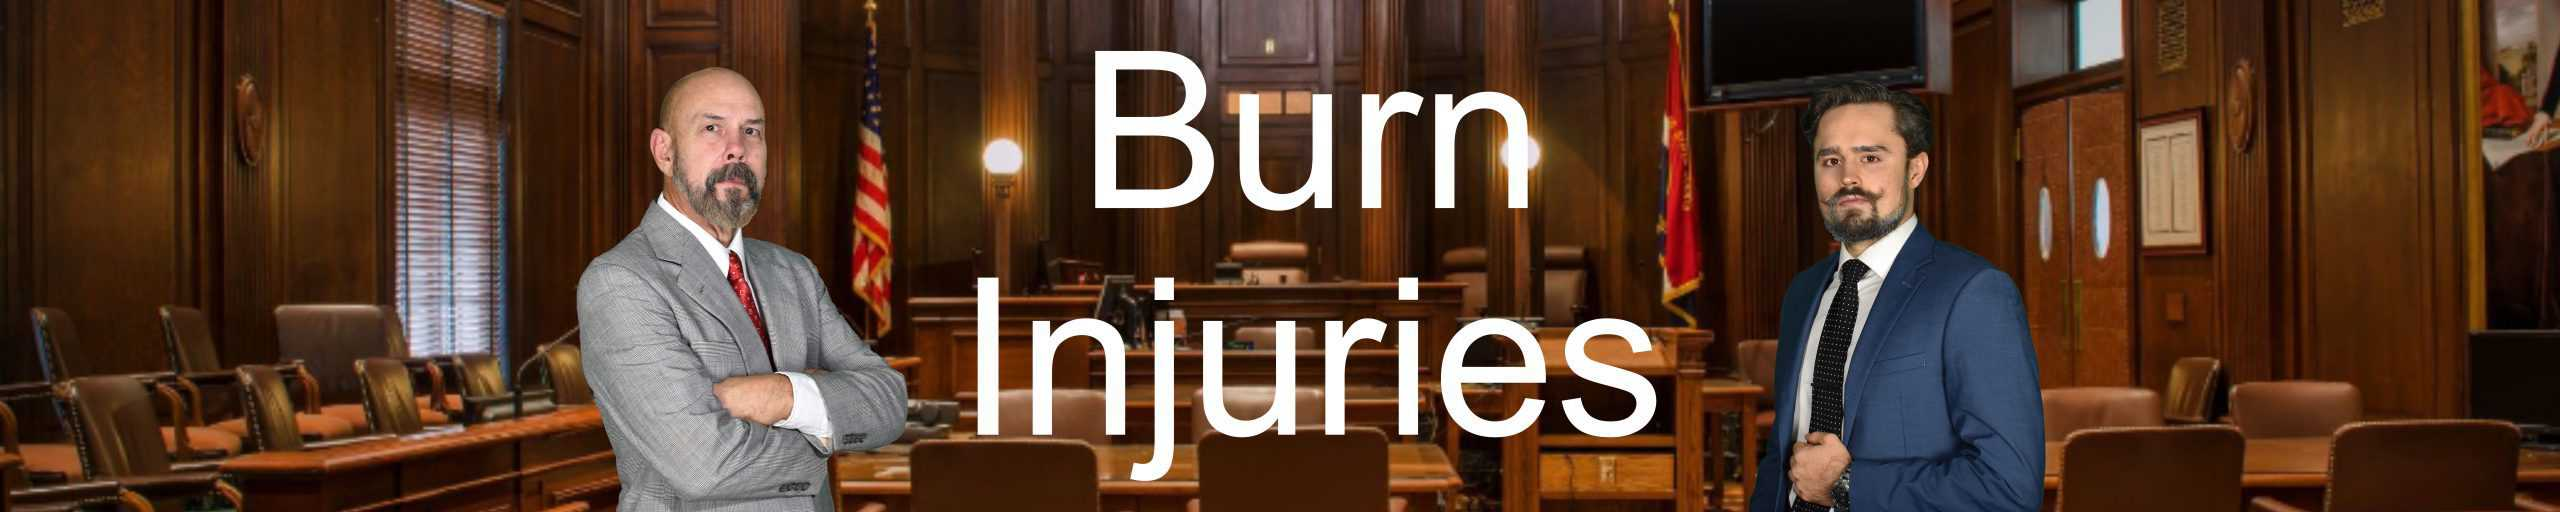 Burn-Injury-Accidents-Personal-Injury-Attorney-Lawyer-Hurt-Broken-Rear-End-Money-Settlement-Hospital-ER-Damage-Insurance-Company-Fire-Store-Car